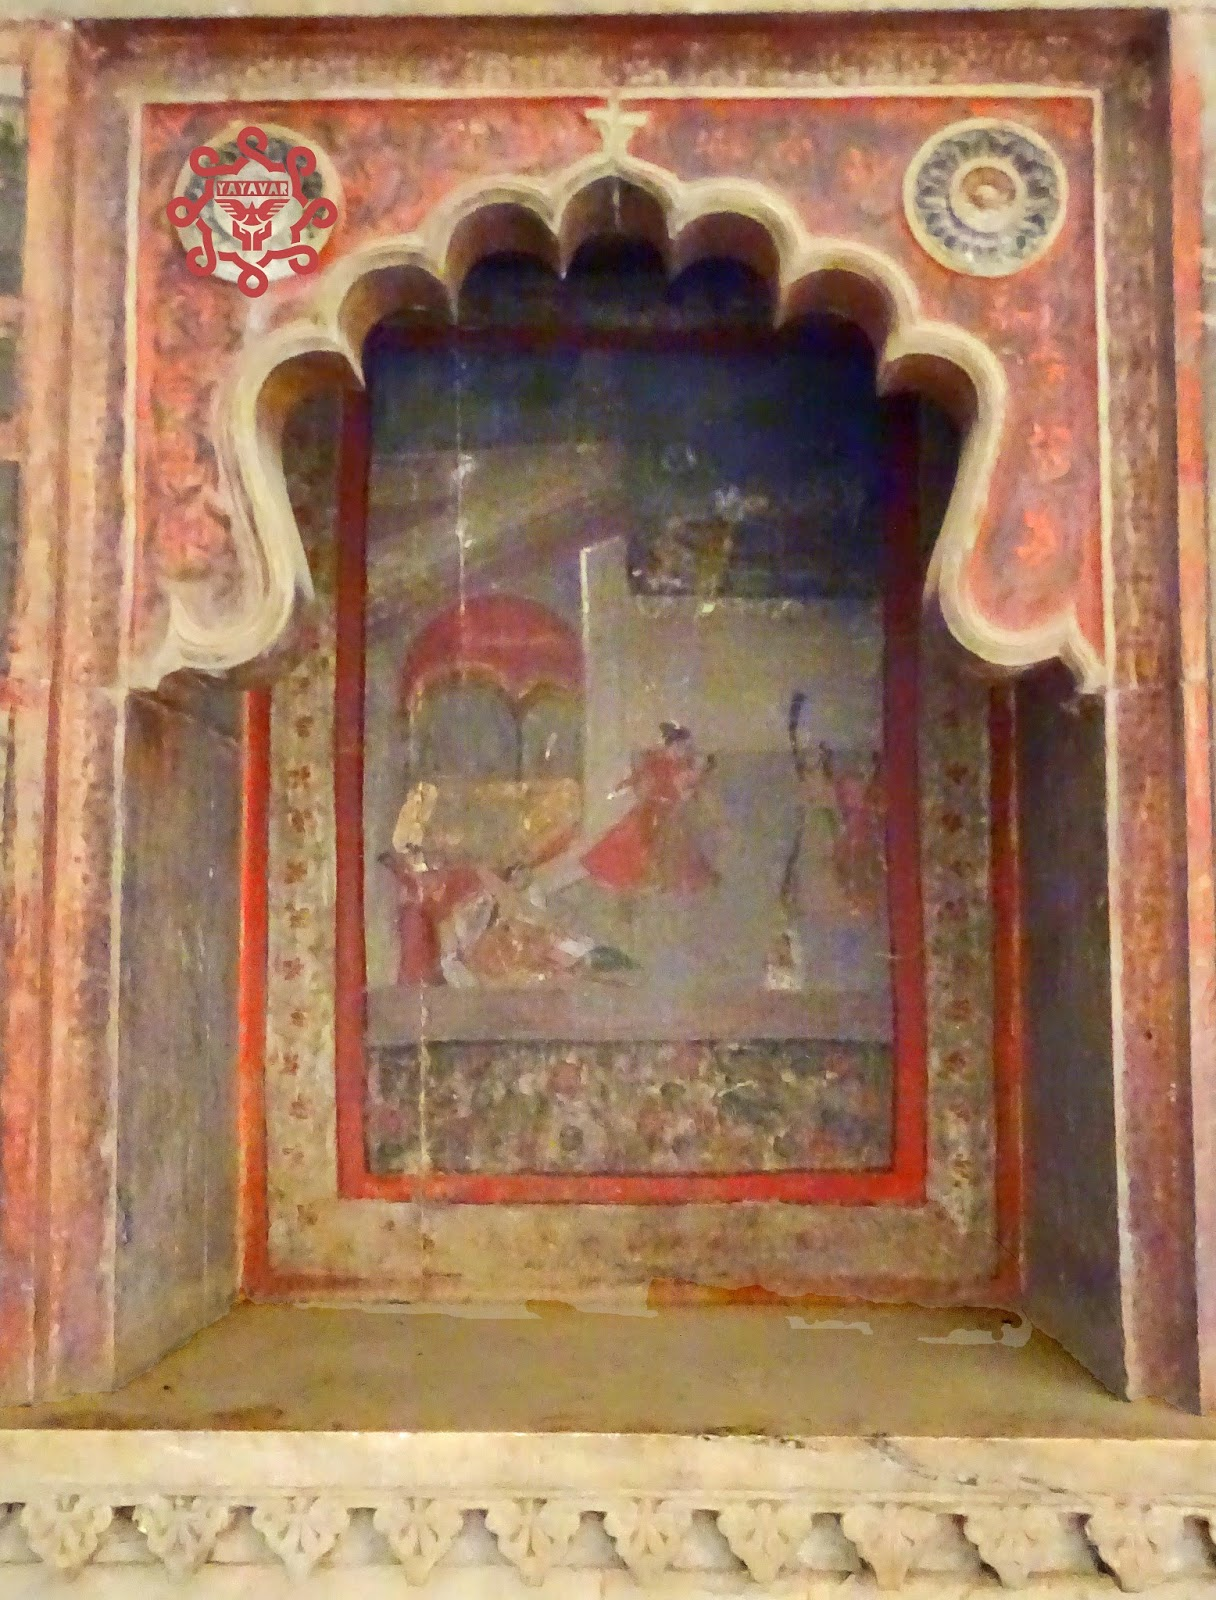 Murals On Walls Of Bundi Fort